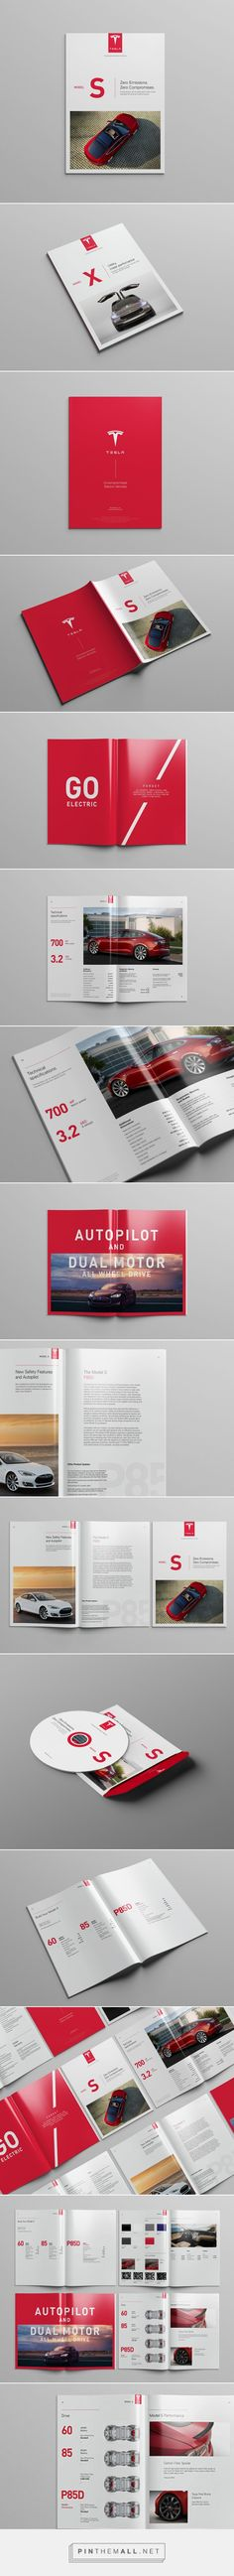 Tesla Model S Catalog #graphicdesign - created via http://pinthemall.net